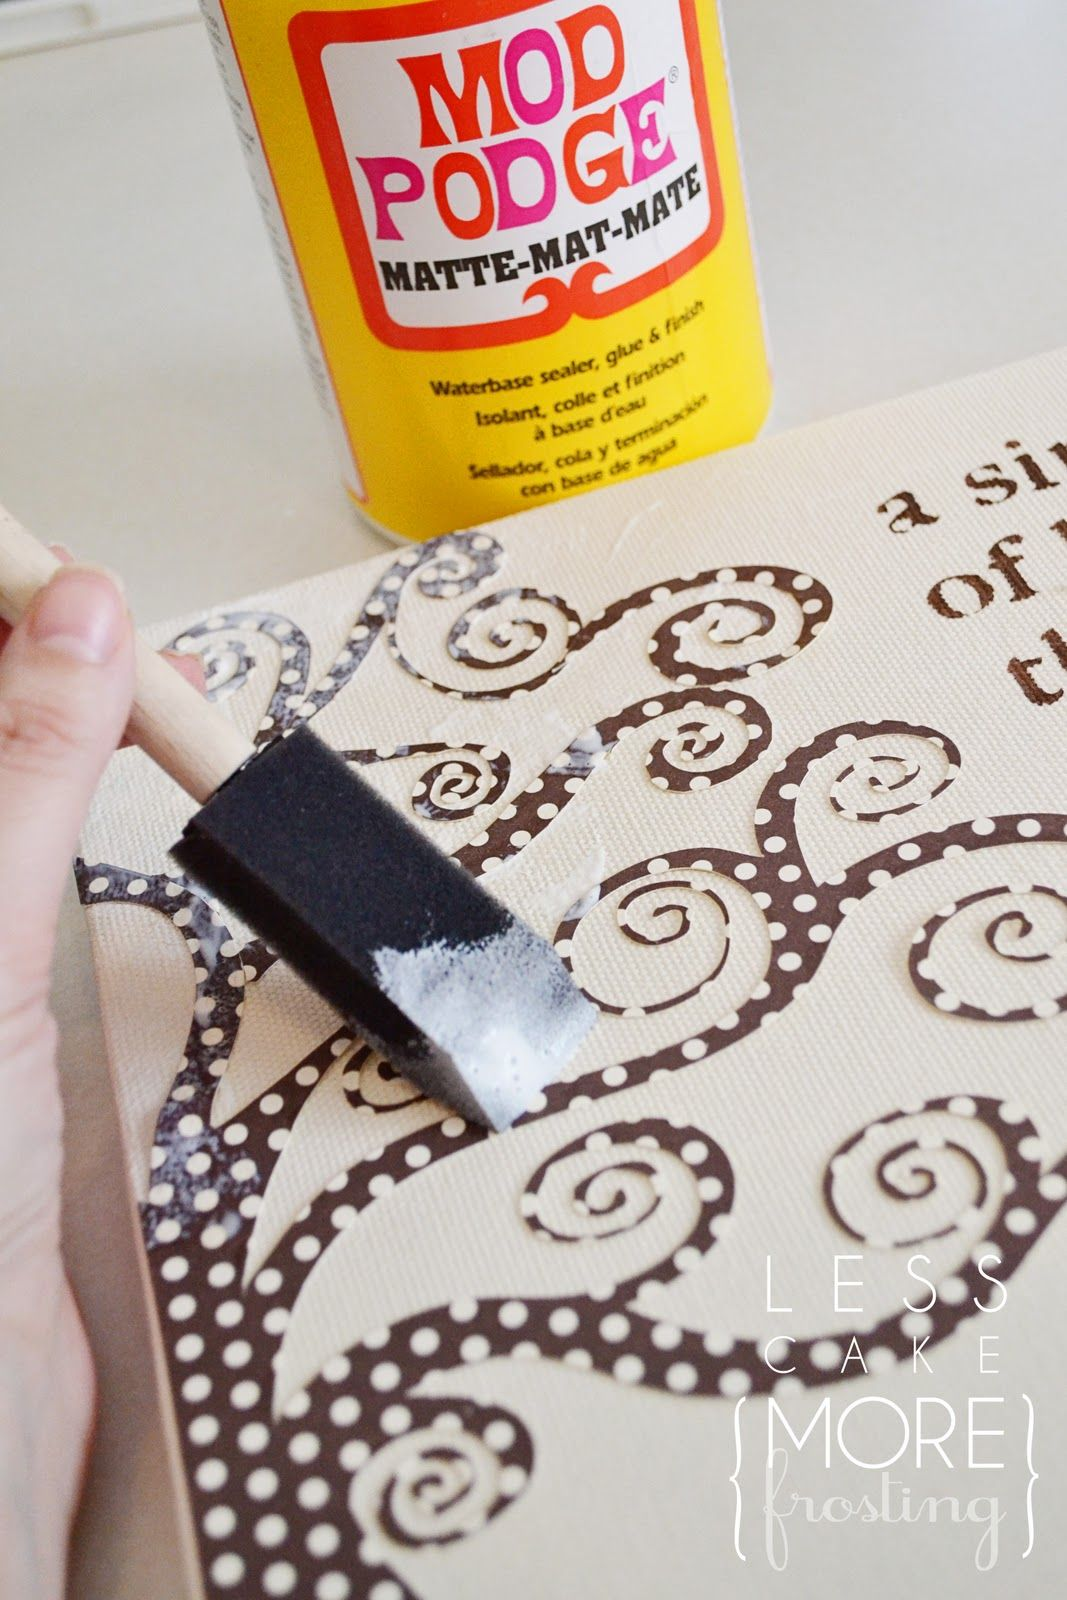 canvas + freezer paper = awesome | Projects to Try | Mod